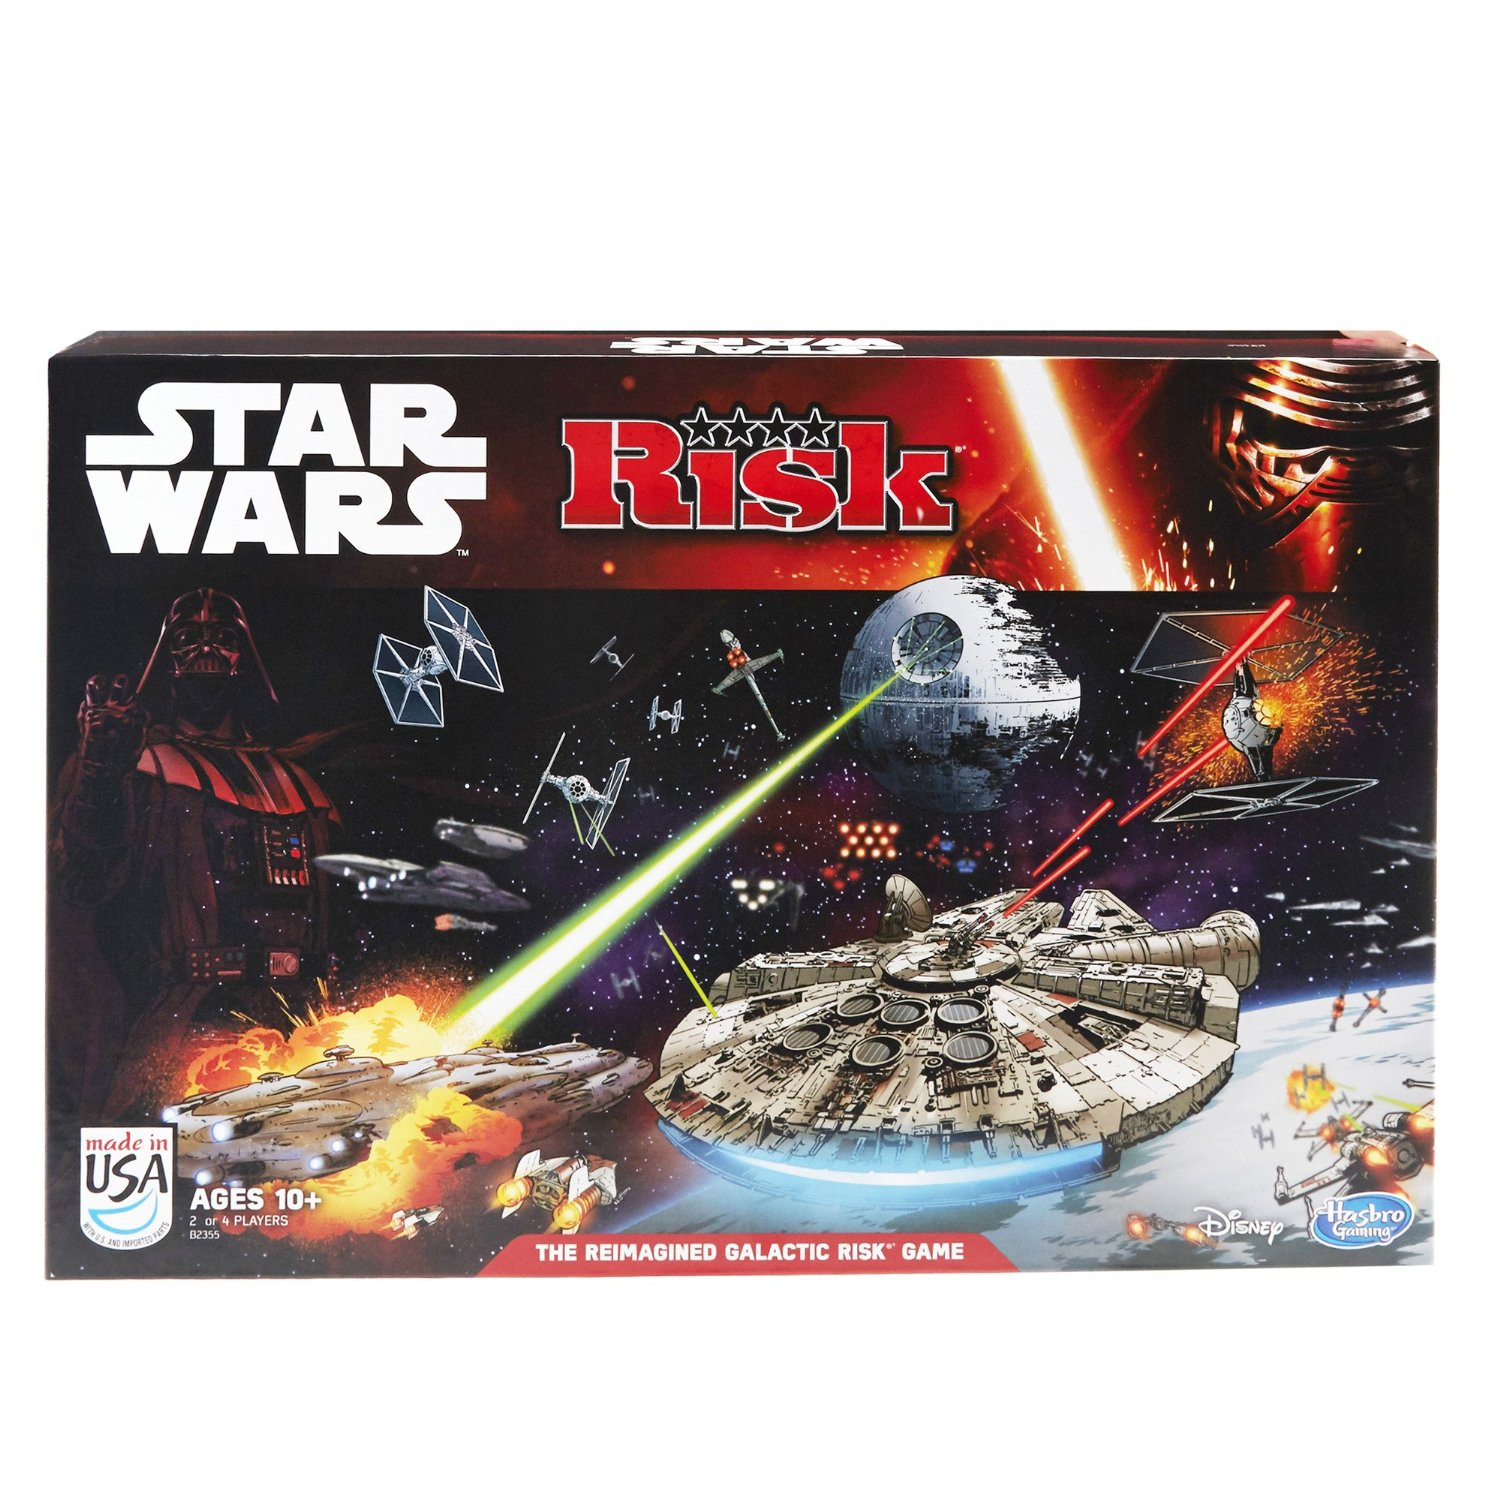 Risk: Star Wars Edition Game, USA, Brand Hasbro by